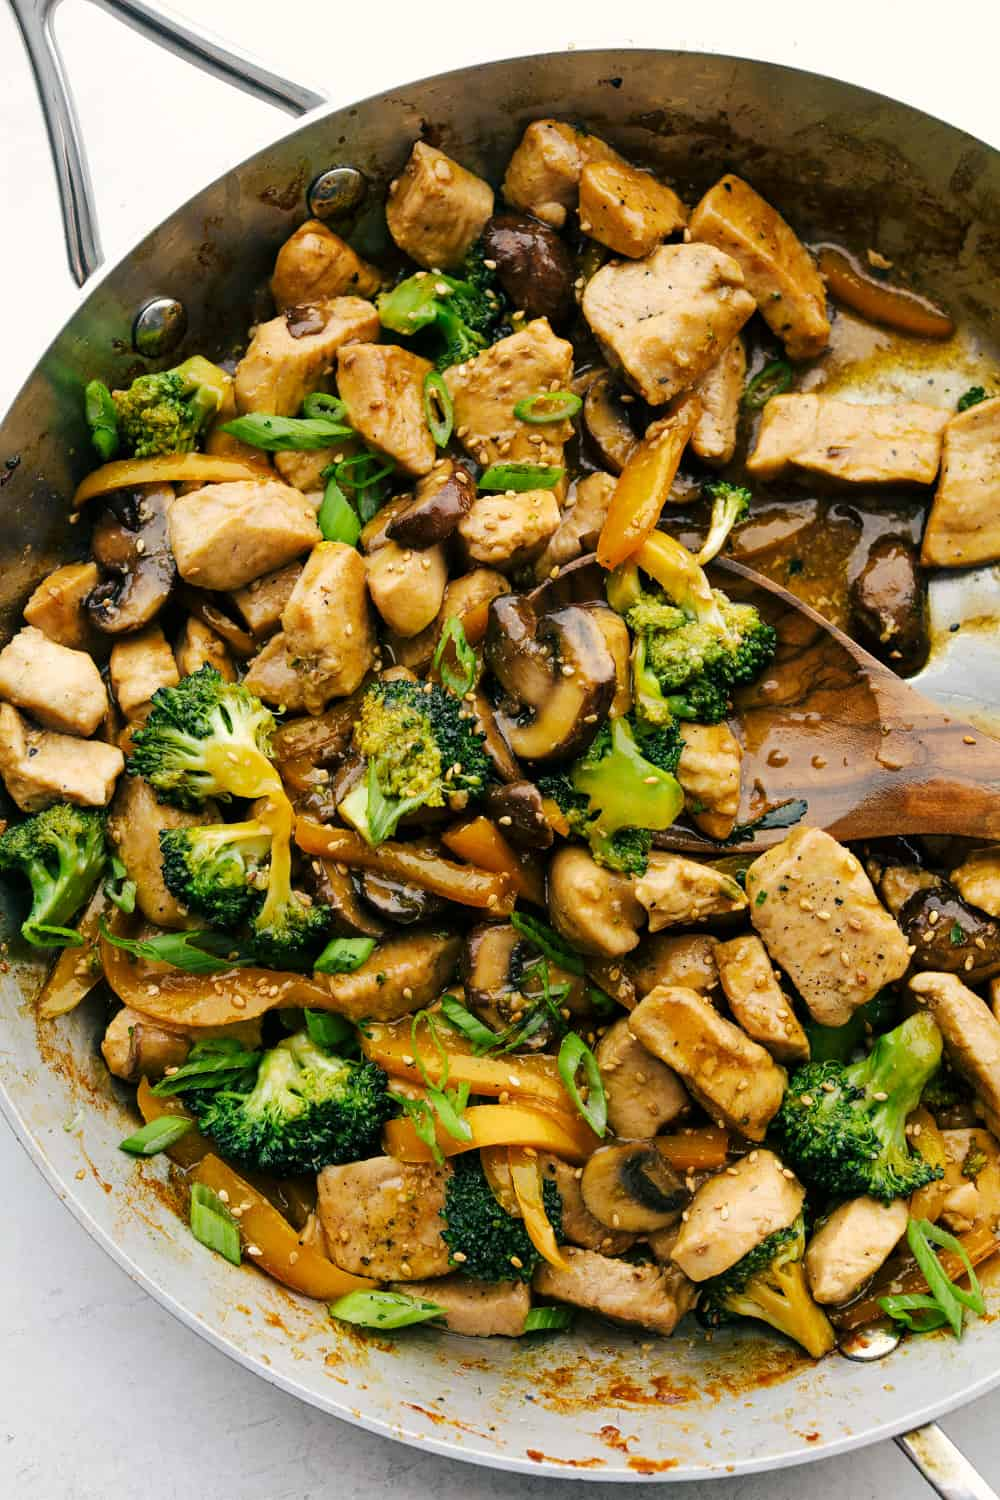 Chicken Garlic stir fry in the pan with broccoli and mushrooms.